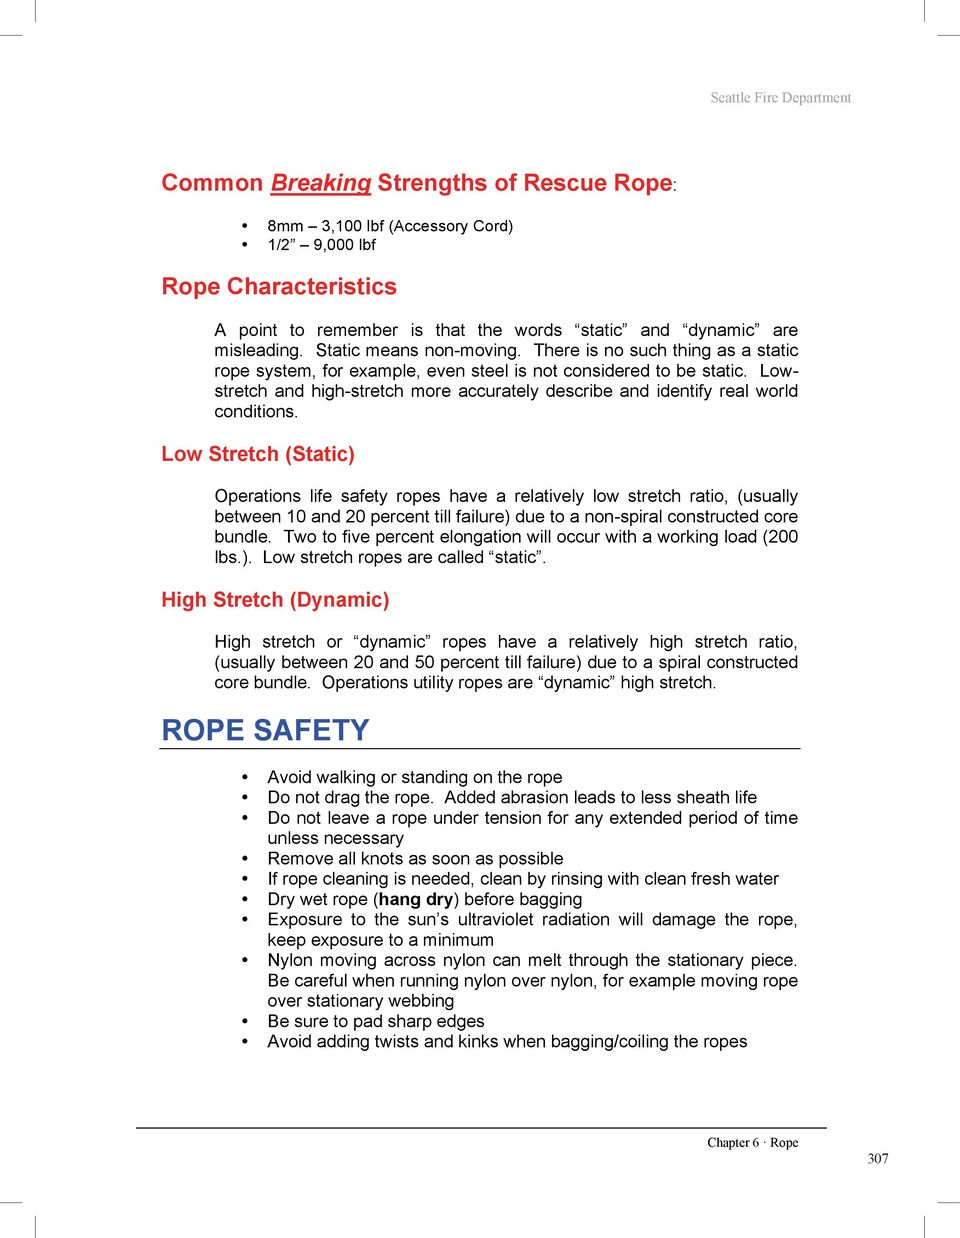 Chapter 6. Basic Ropes & Knots. Chapter 6 Ropes & Knots - PDF